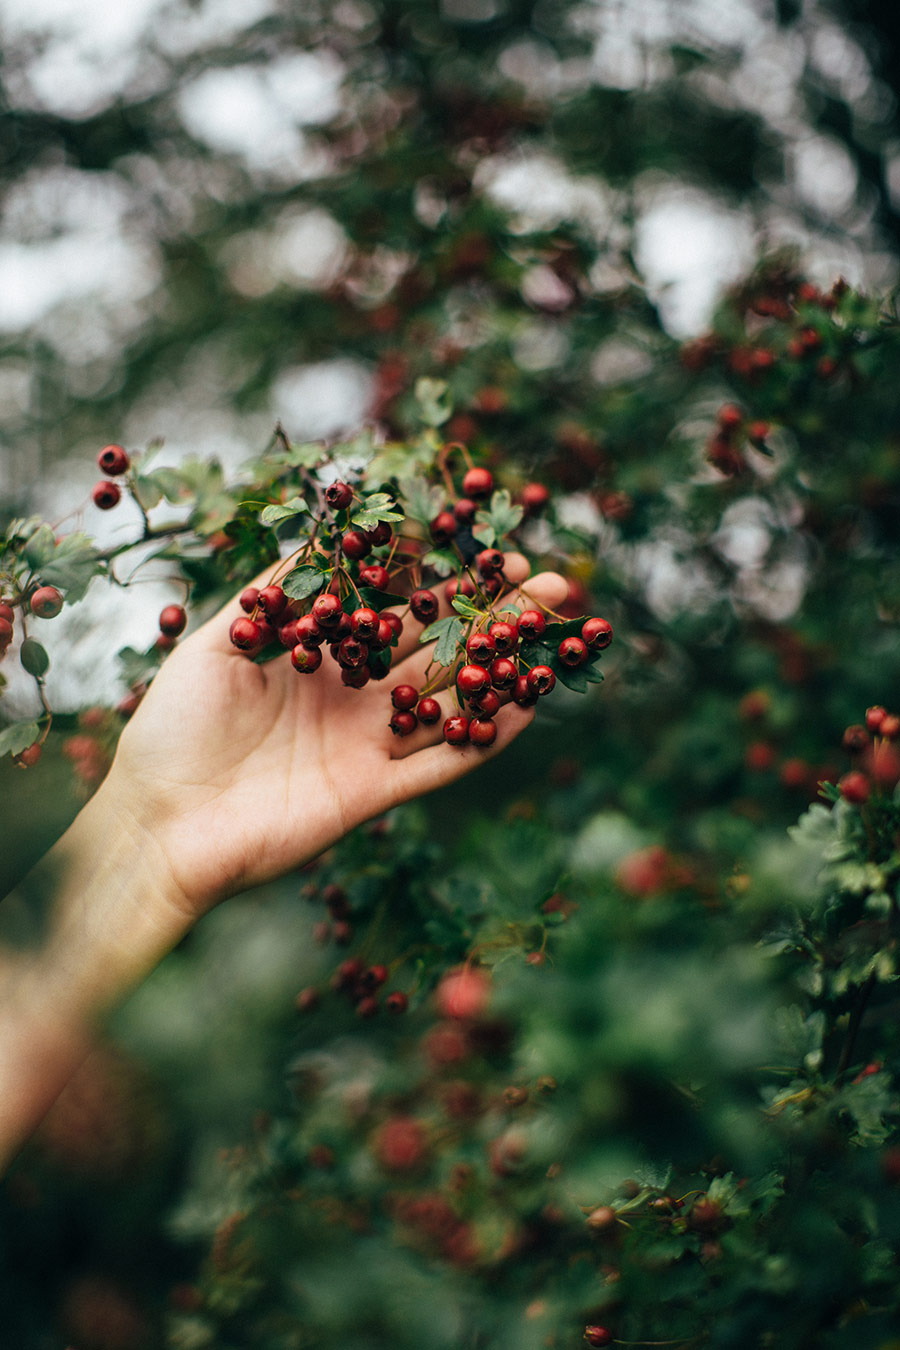 Foraging for hawthorn berries - The Wild Dyer